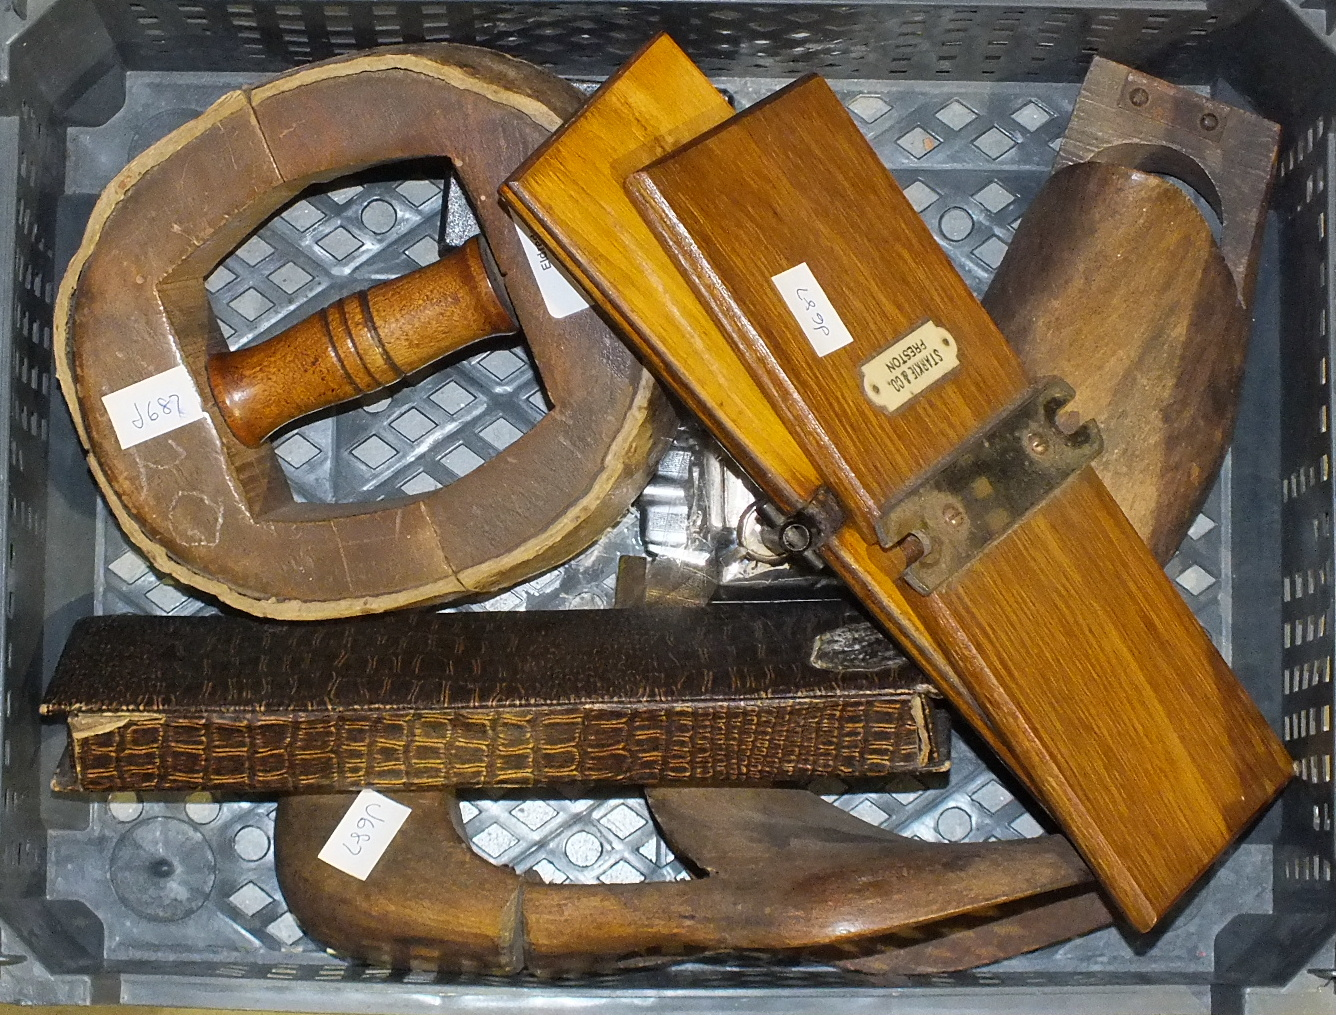 Lot 175 - A wooden hat stretcher and other items.